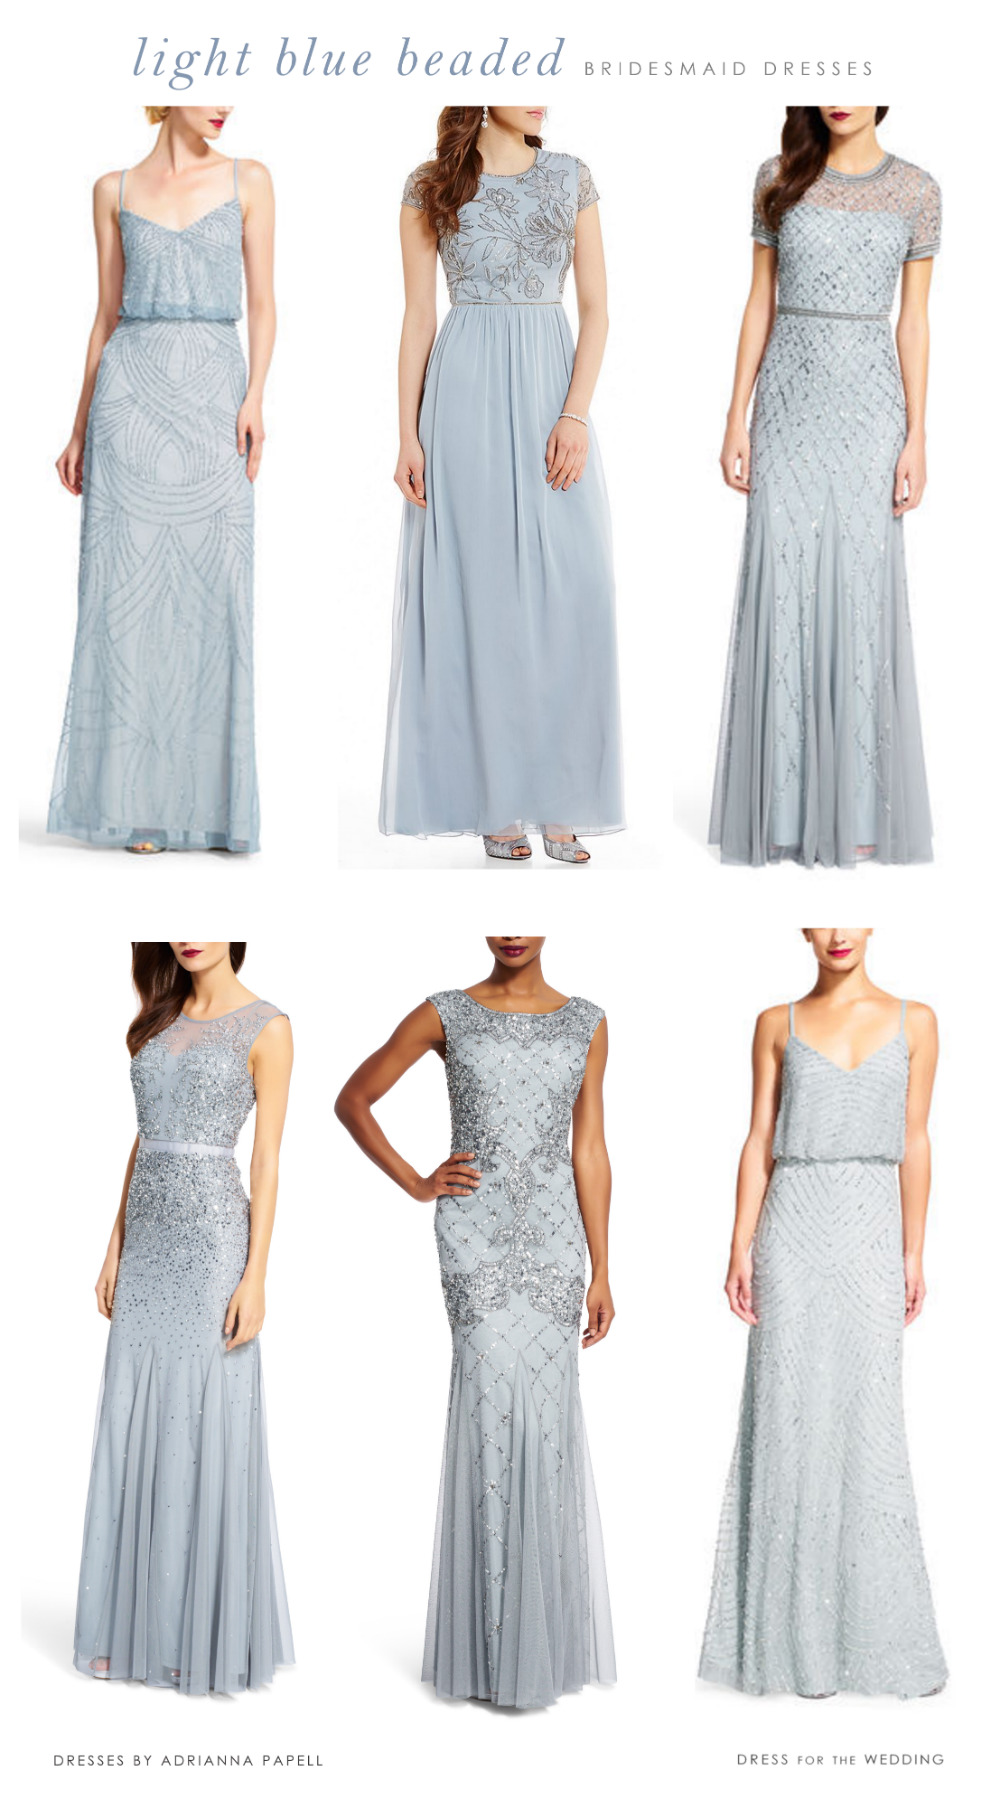 Light blue mix and match bridesmaid dresses dress for the wedding its easy to shop by color see all the blue dresses here and style and there is range of sizes and lengths ombrellifo Image collections